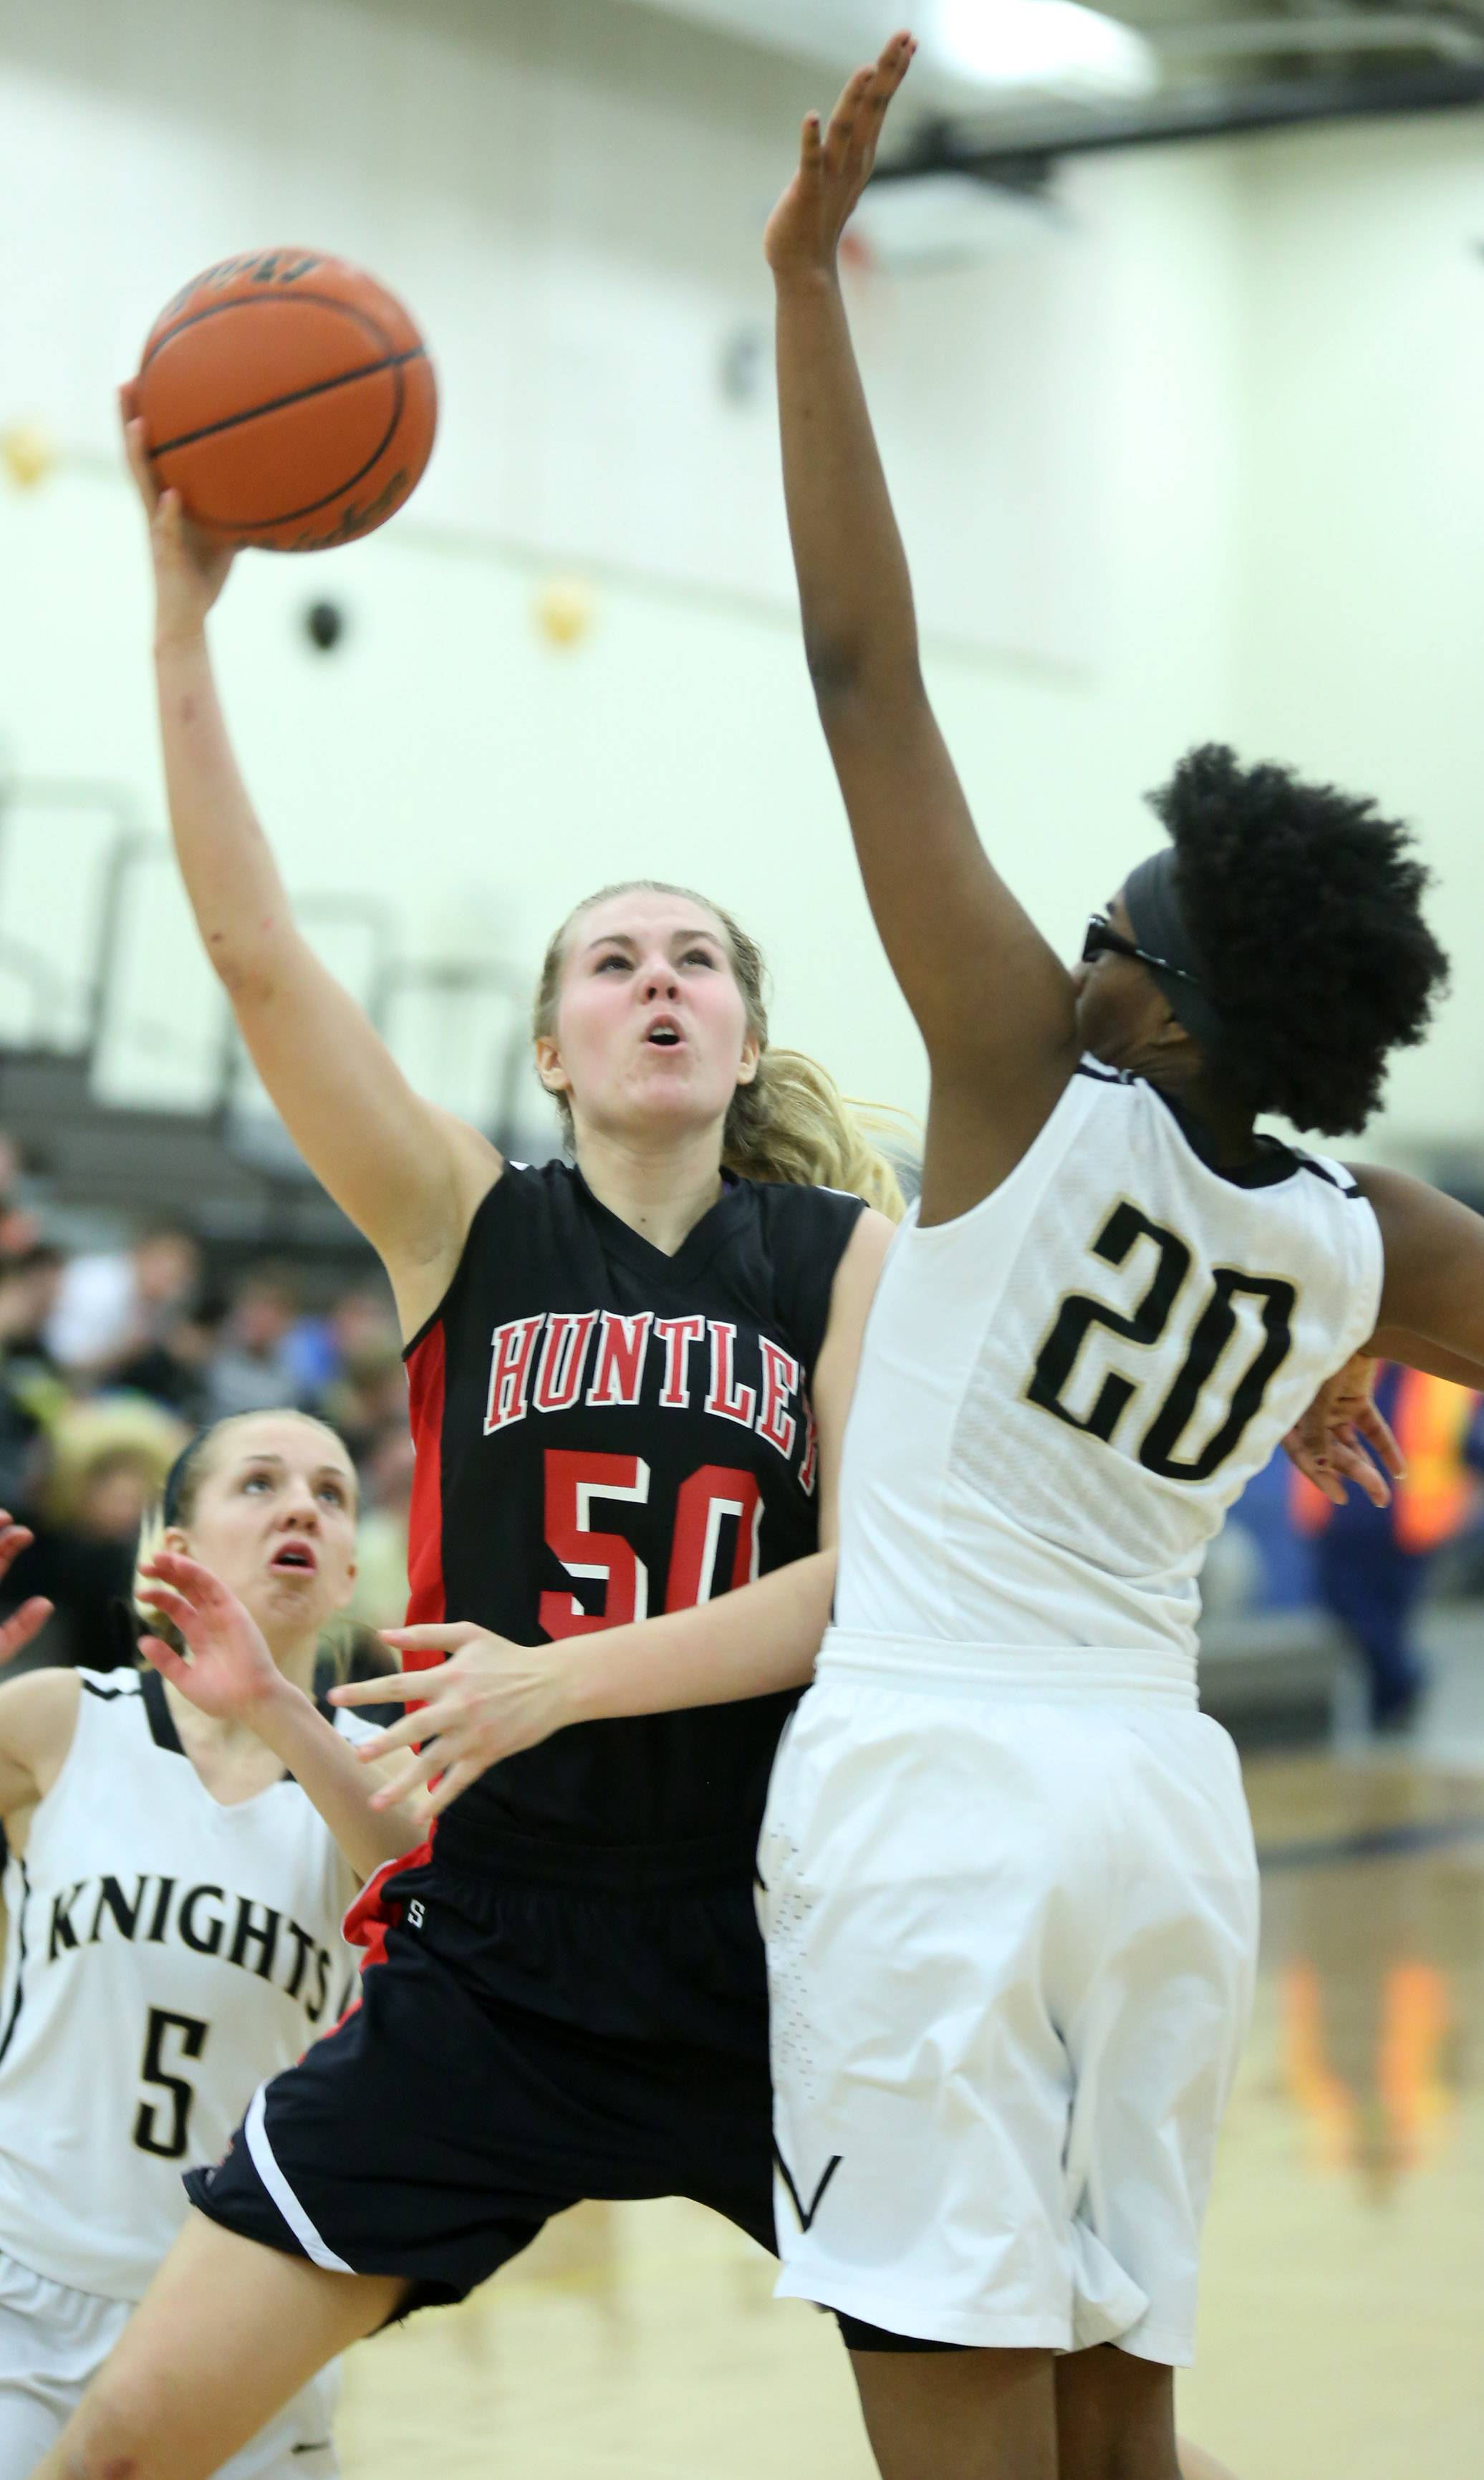 Huntley's Andrews sisters too much for Grayslake N.